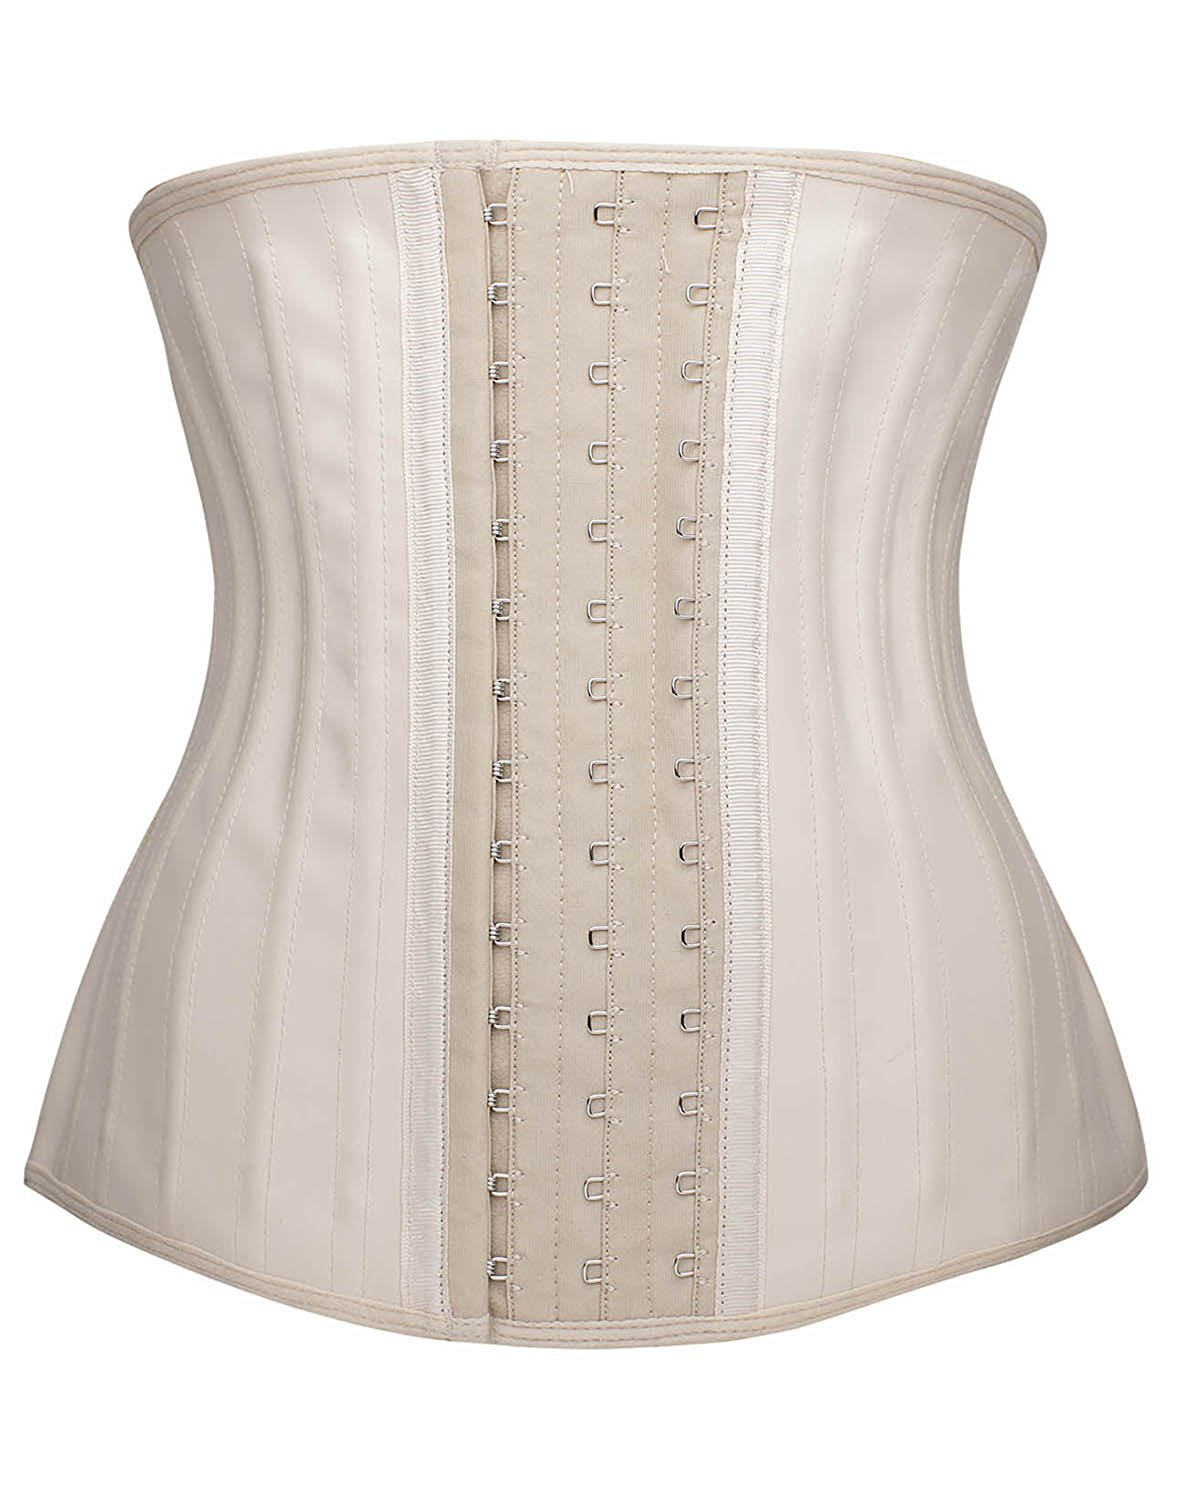 YIANNA Womens Waist Trainer Underbust 25 Steel Boned Sports Fitness Fat Burning Workout Hourglass Body Shaper, YA1210-Beige-6XL